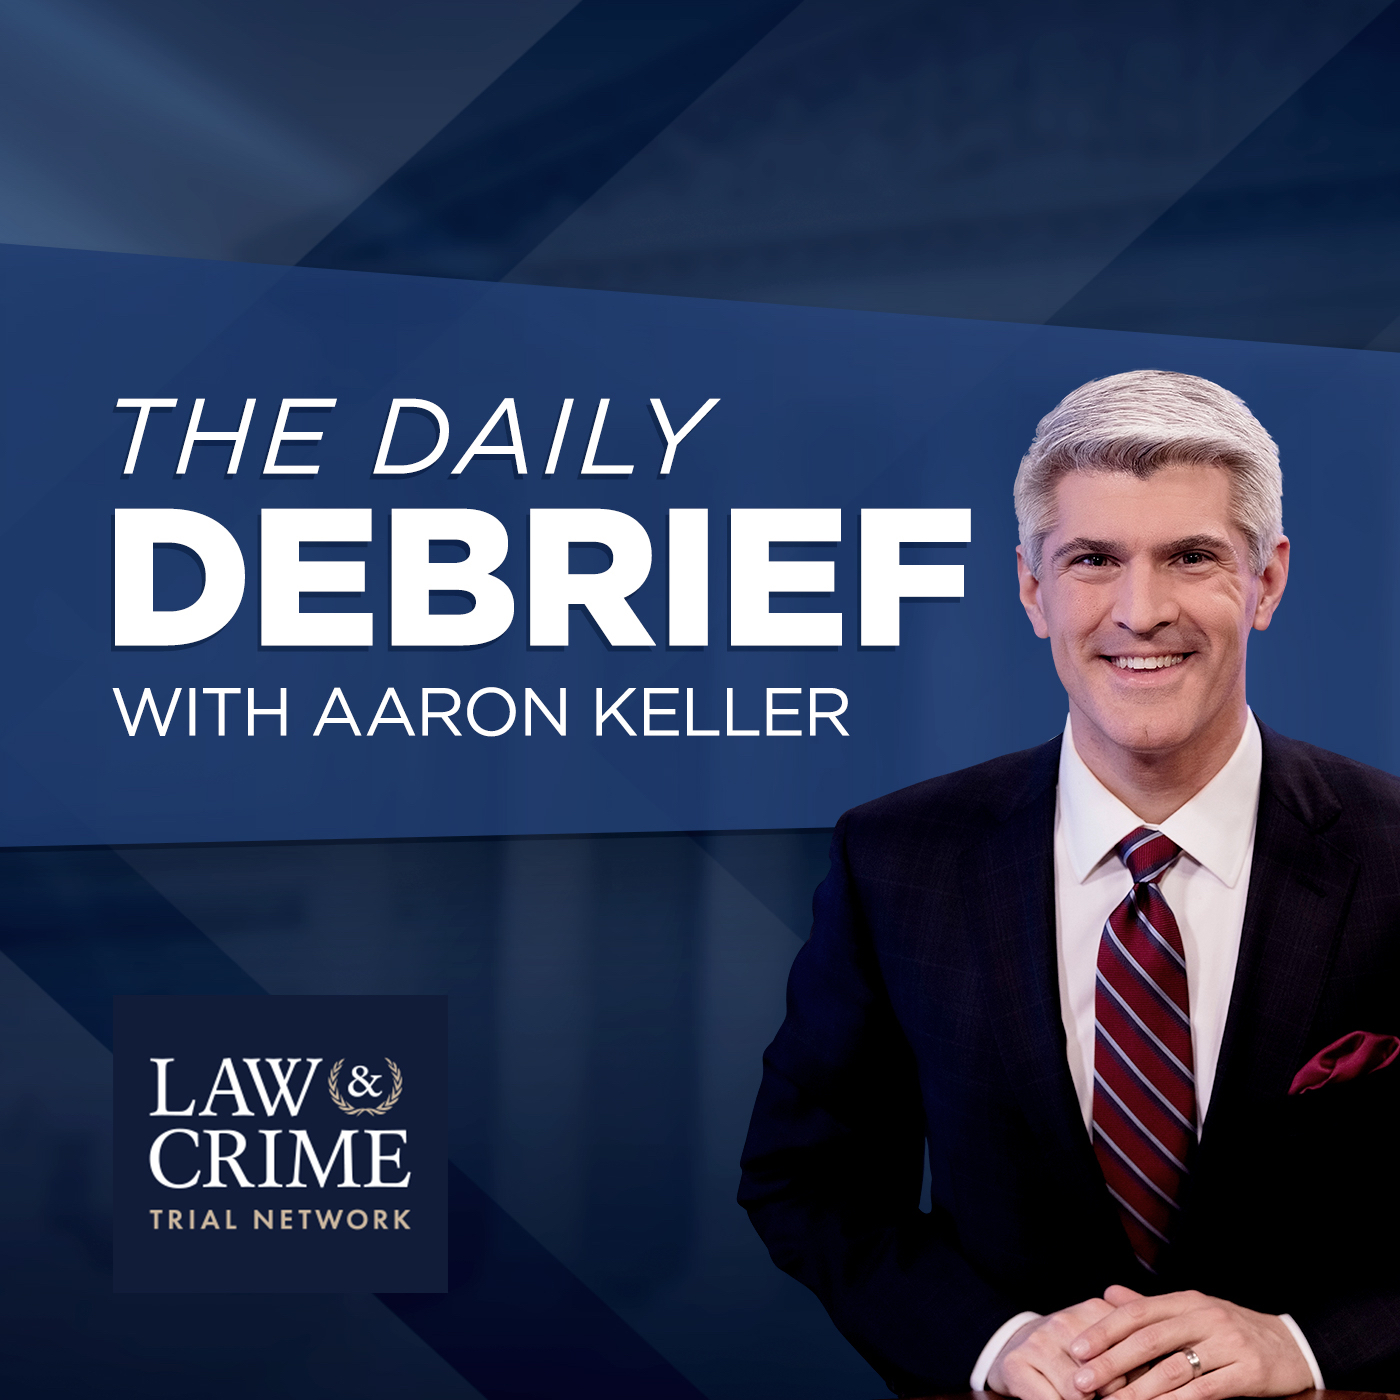 Law & Crime's Daily Debrief